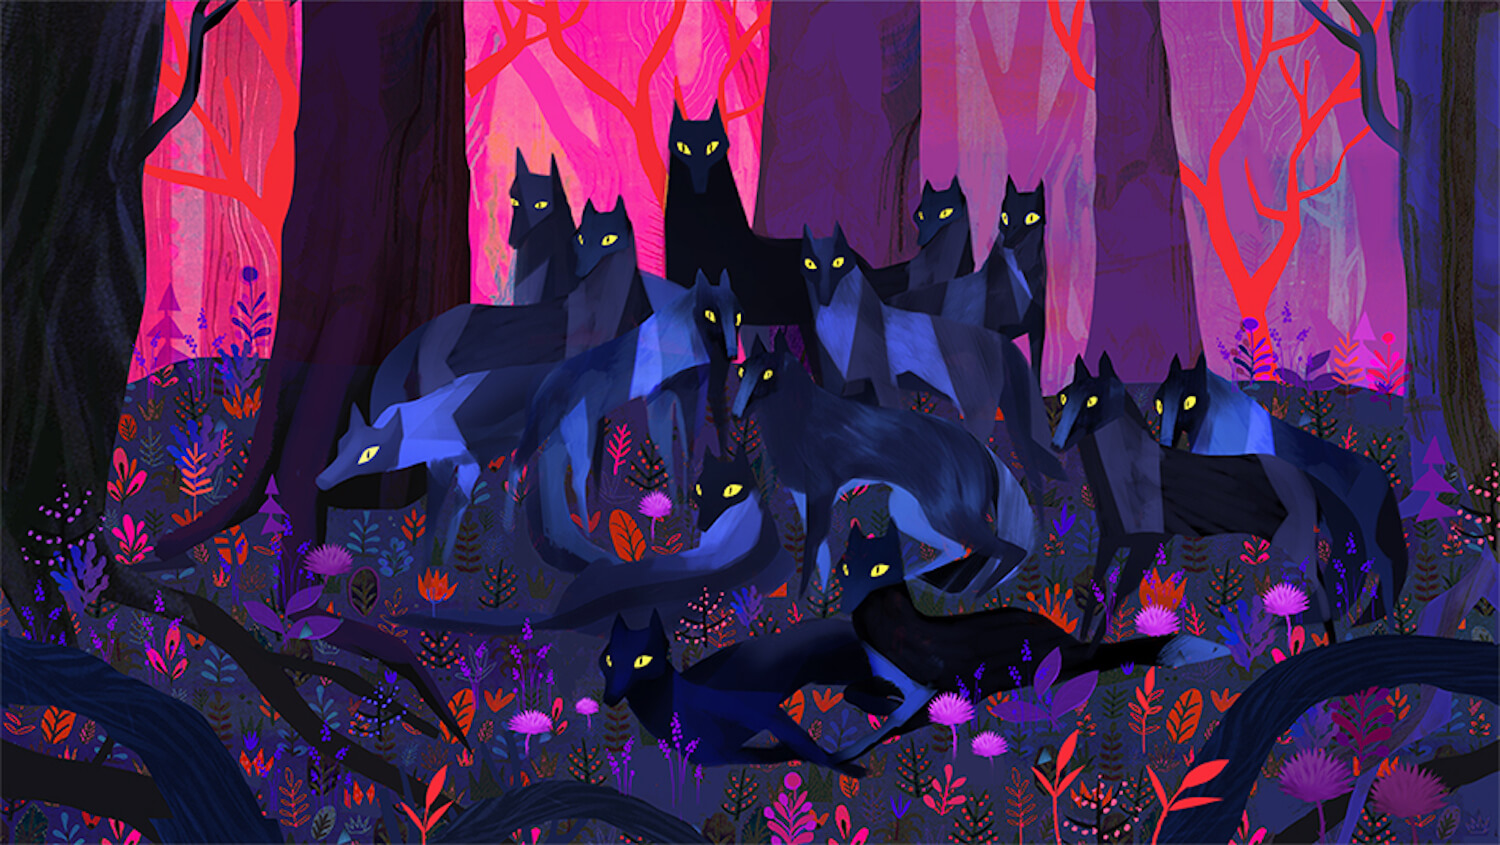 concept art of wolves by Juliette Oberndorfer